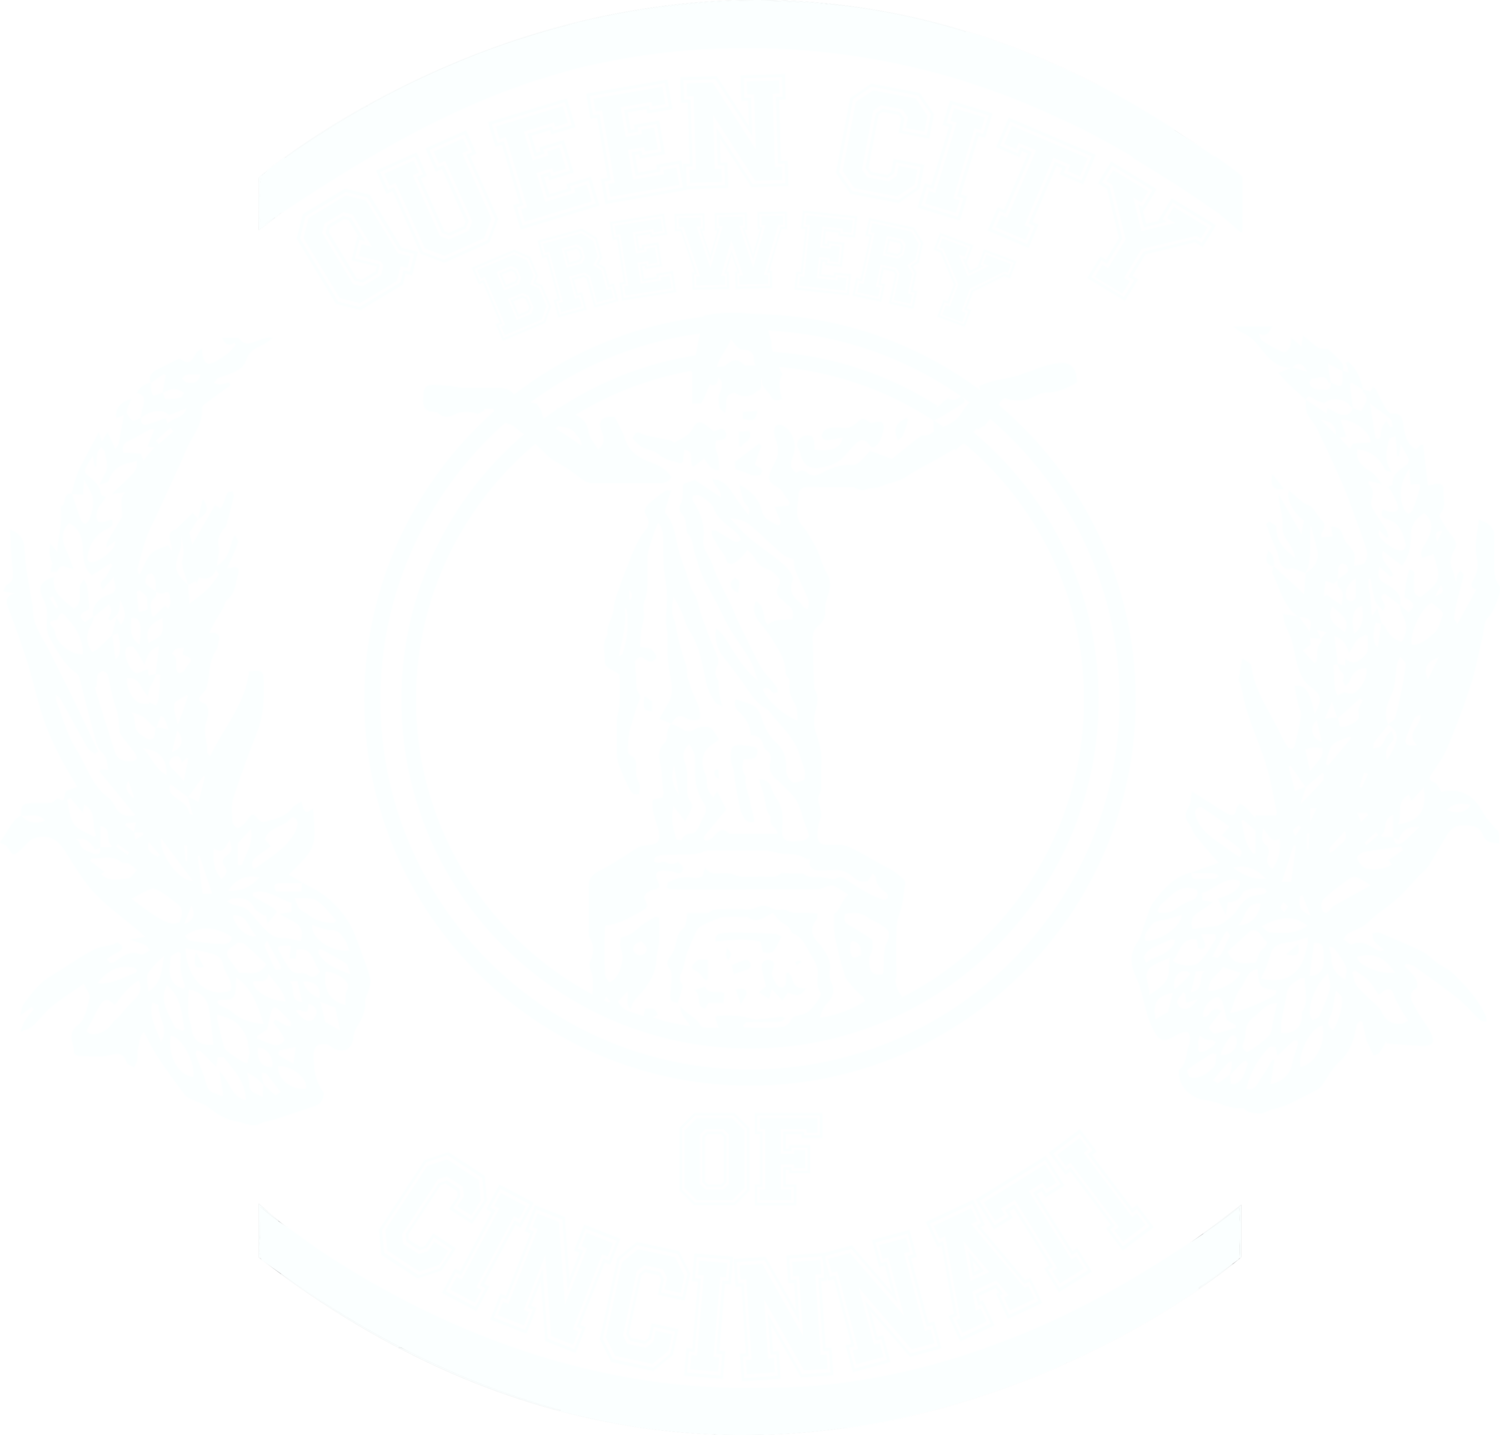 Queen City Brewery of Cincinnati